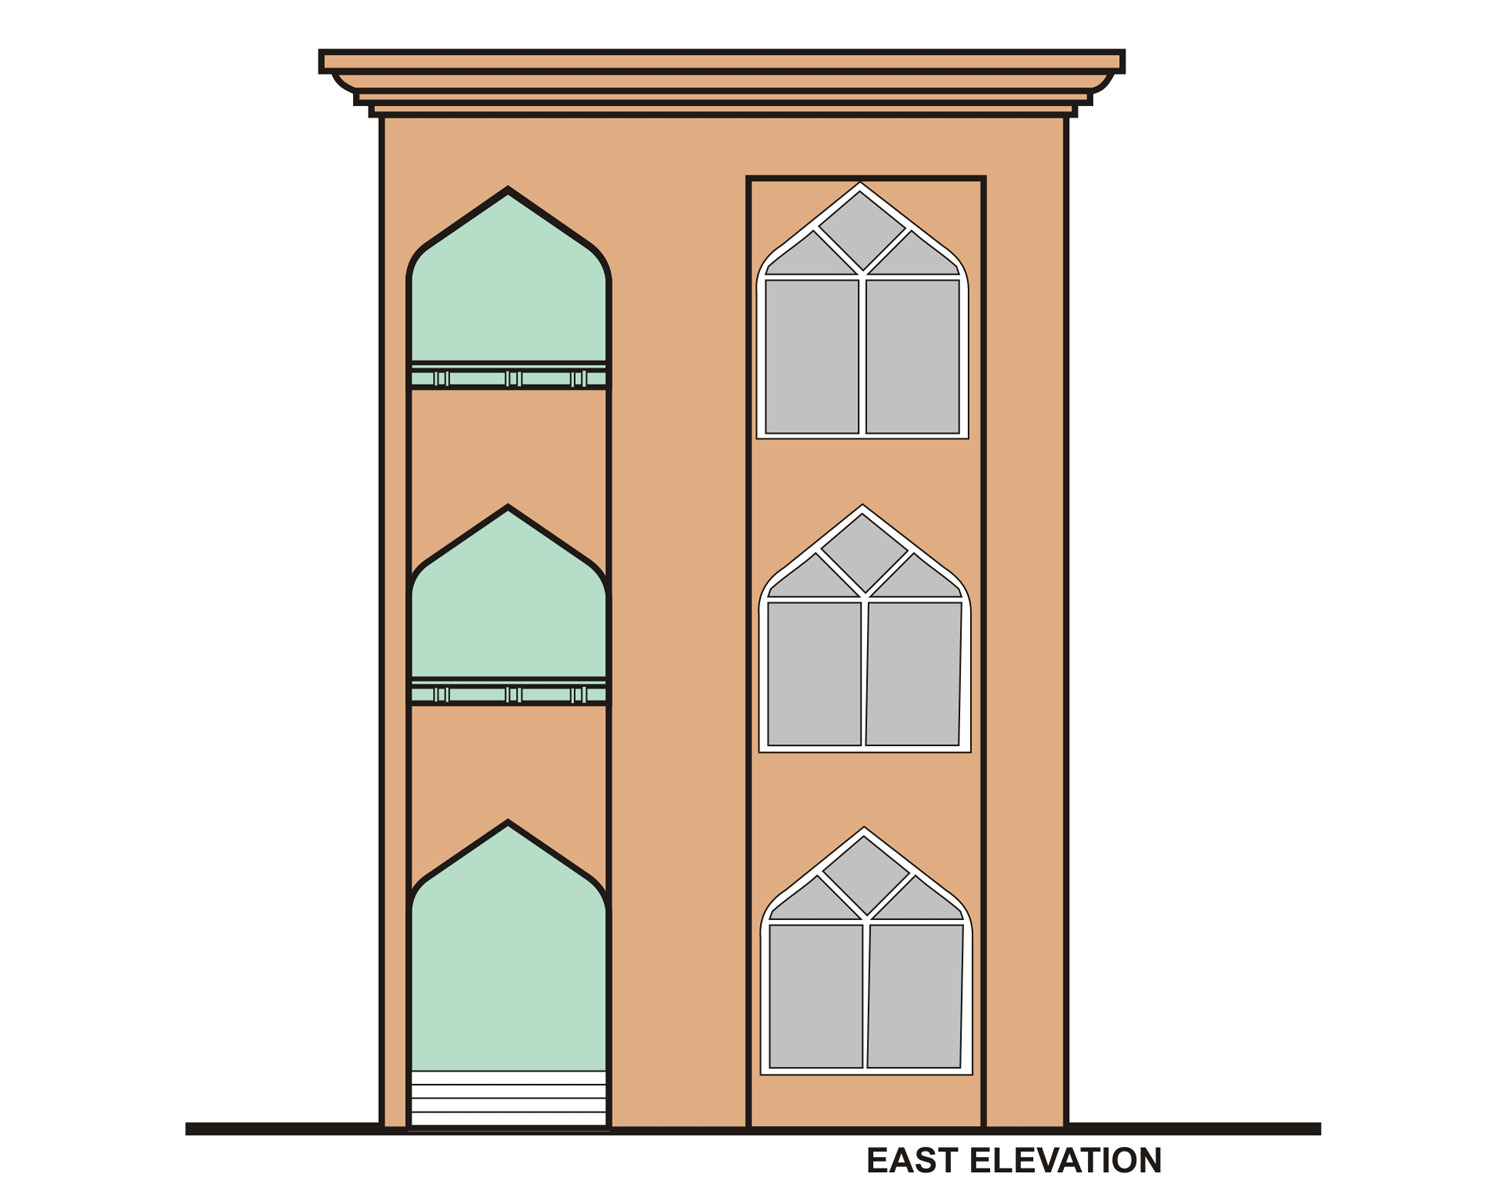 9East Elevation